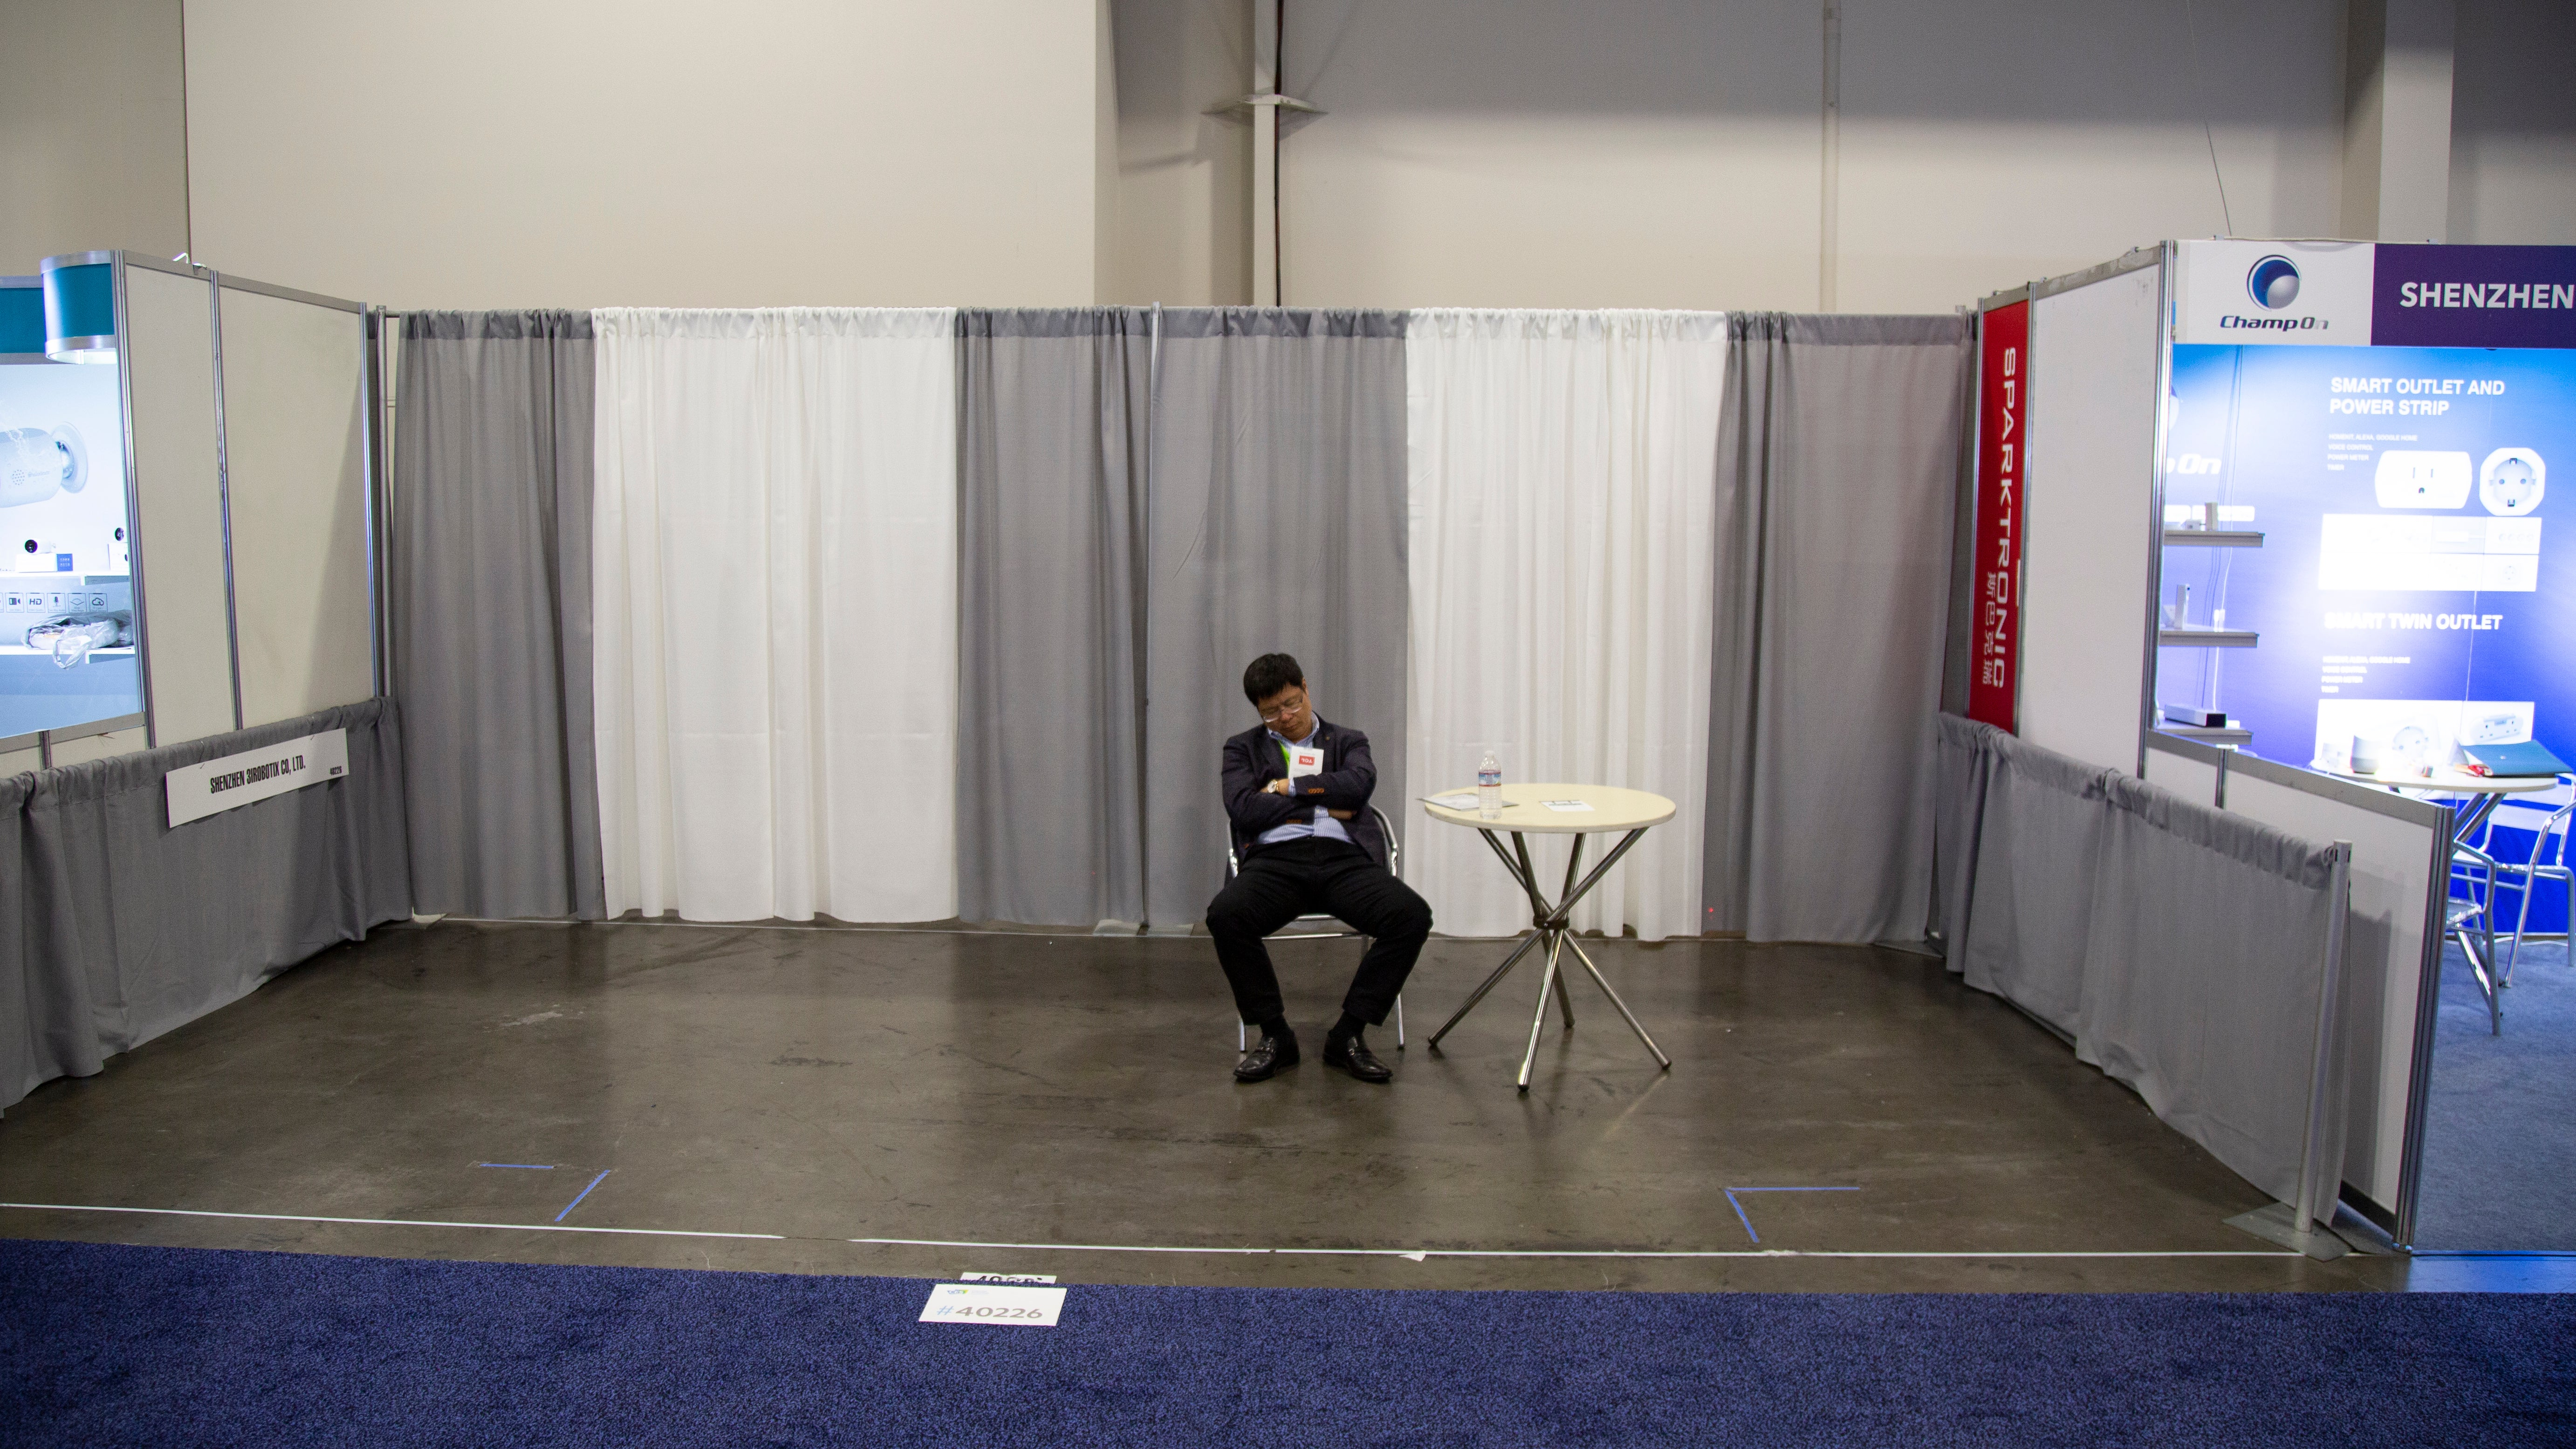 This Sad Booth Is A Metaphor For CES This Year